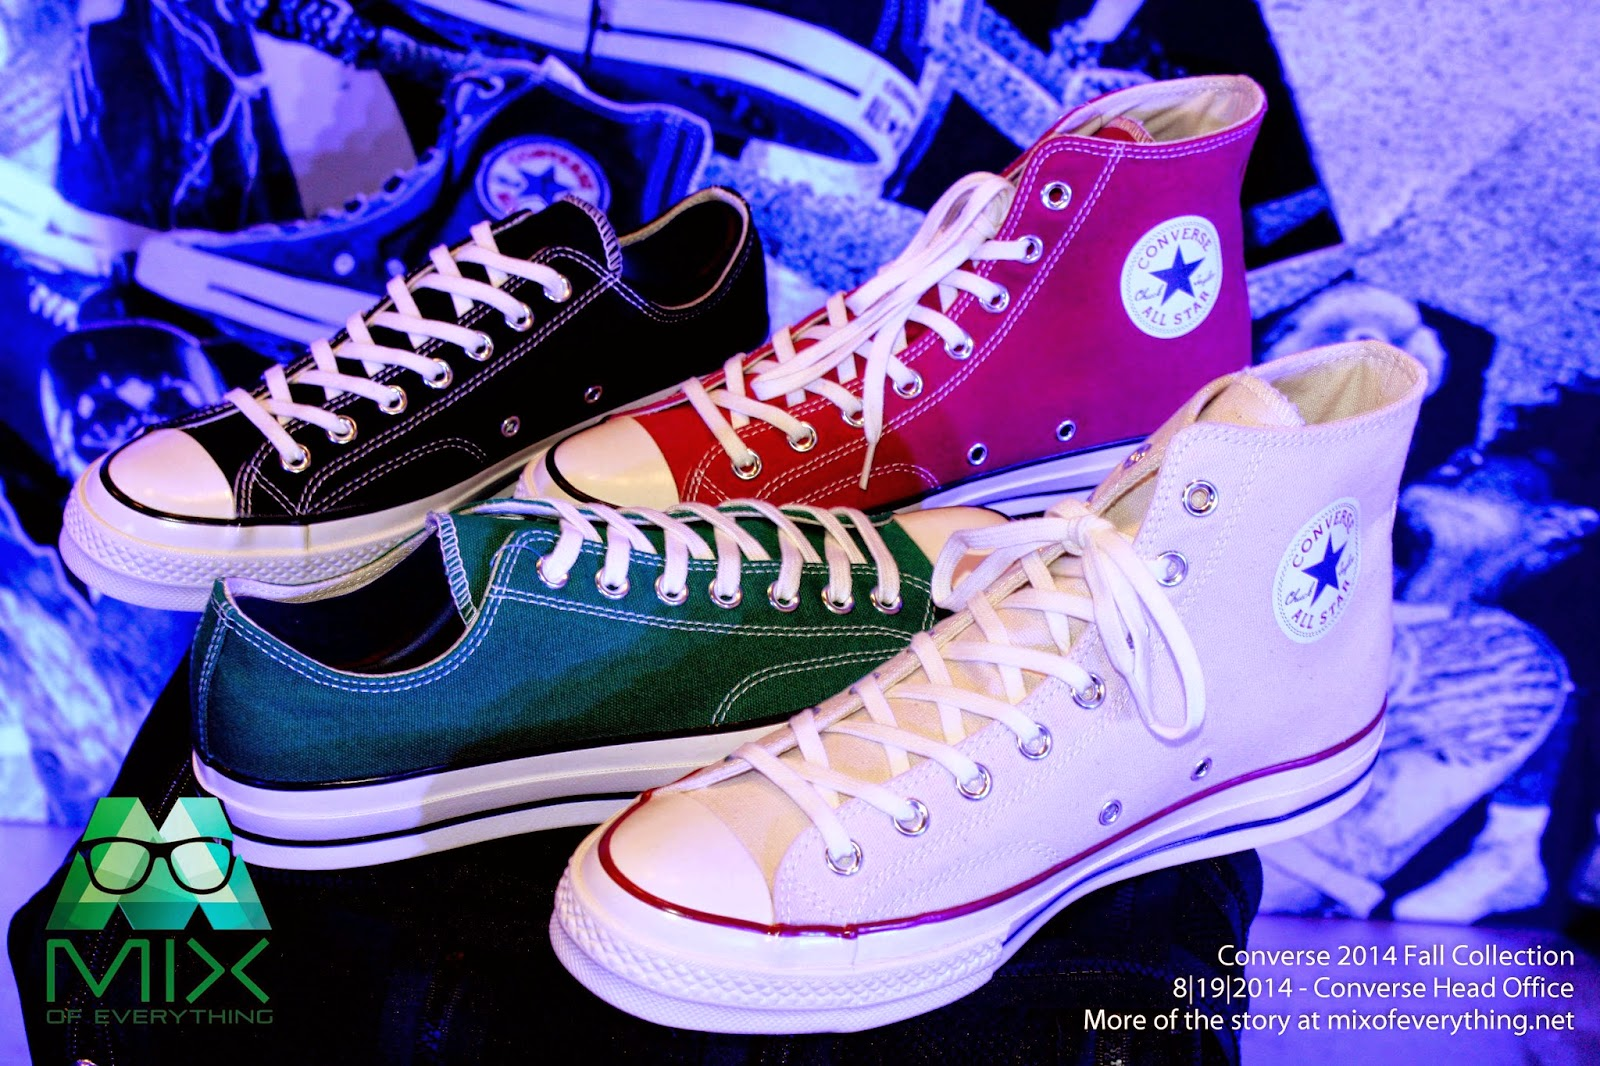 Forum on this topic: Converse Chuck Taylor All Star Fall 2014, converse-chuck-taylor-all-star-fall-2014/